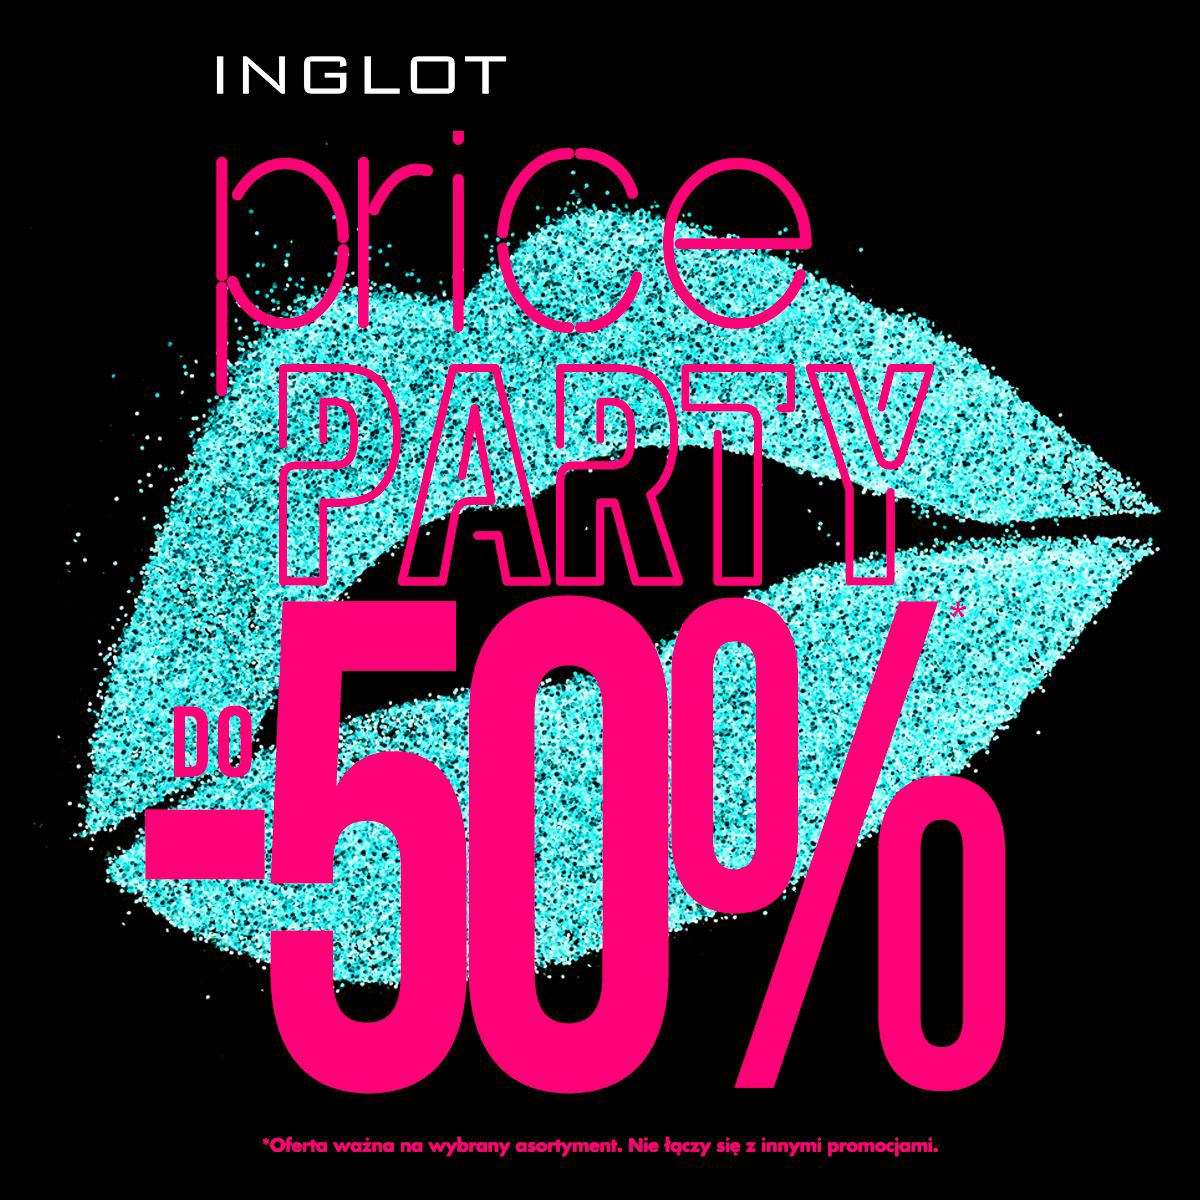 INGLOT: price party -50%